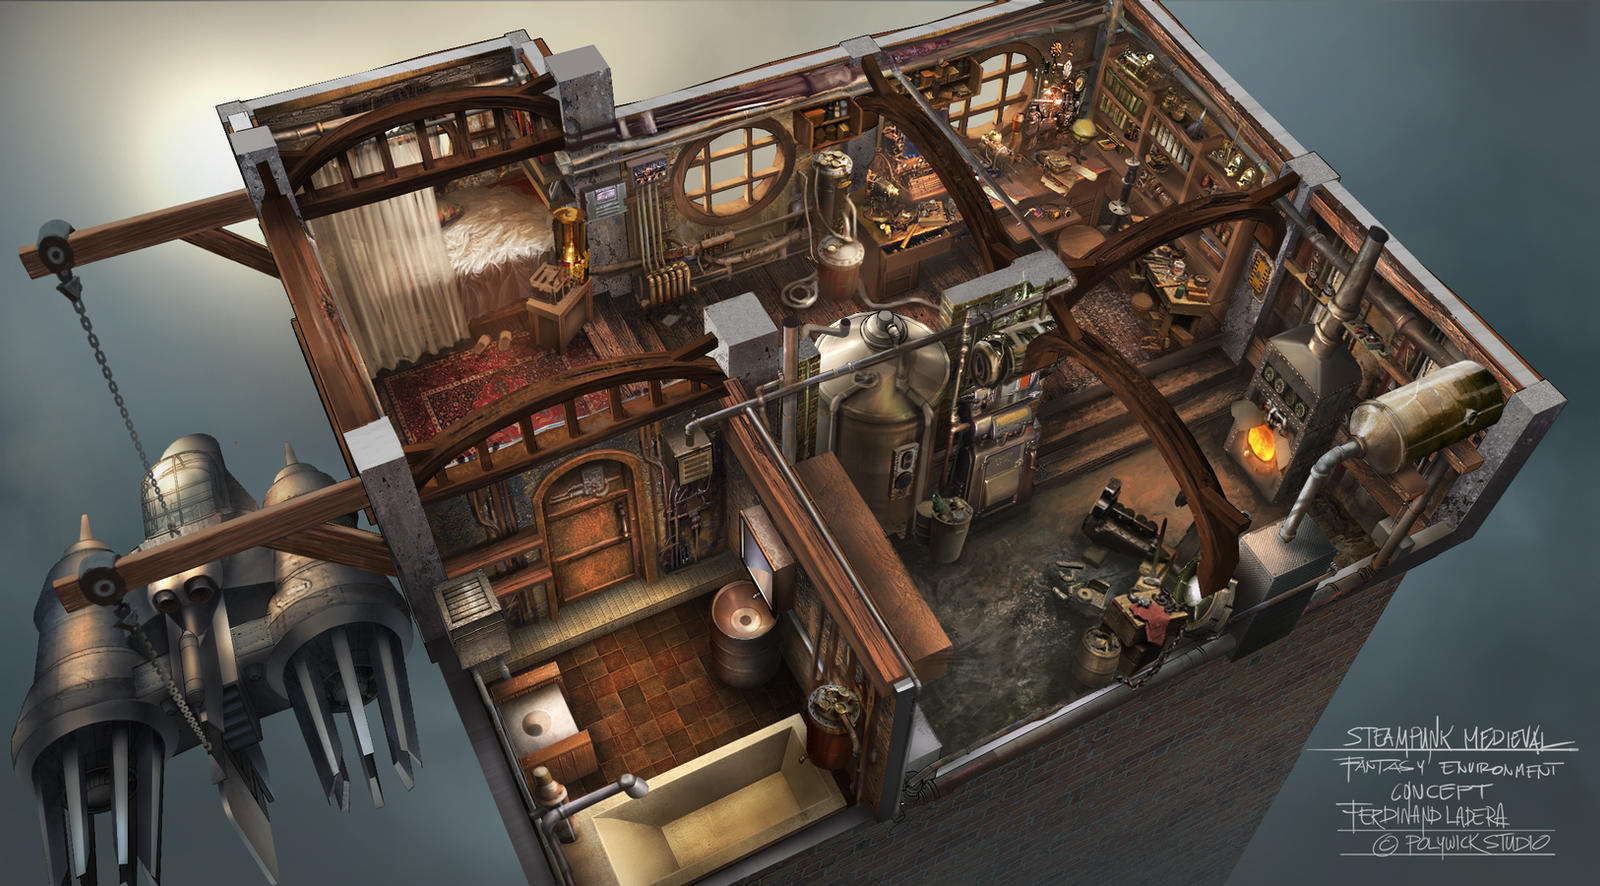 steampunk interior by ferdinandladera on deviantart